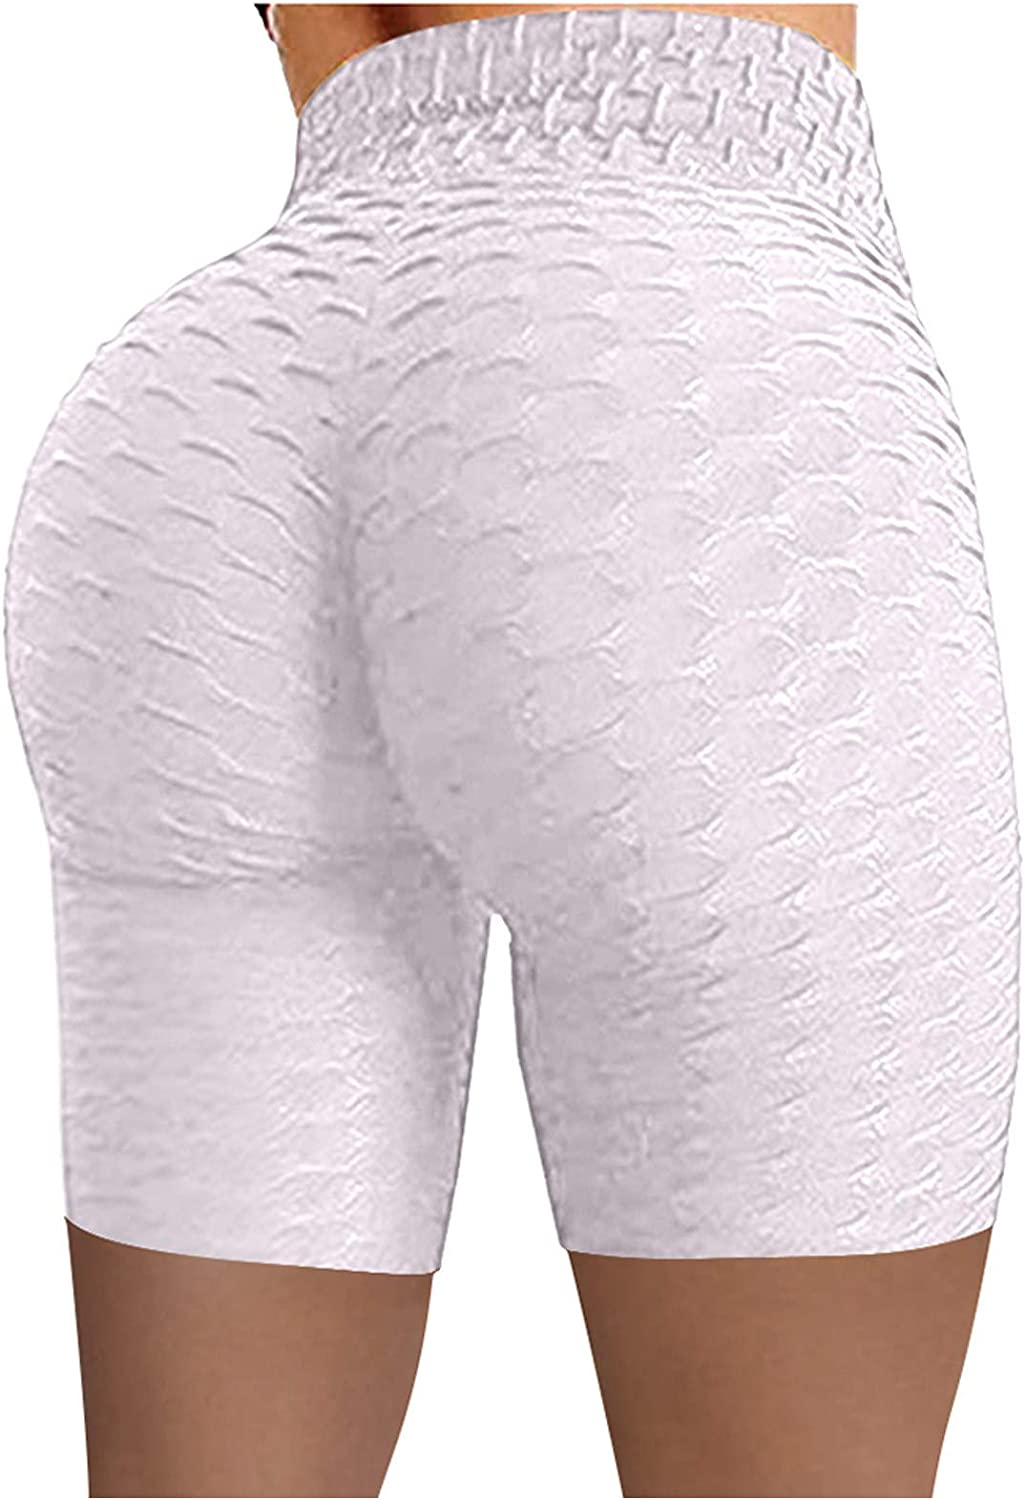 poundy outerwear Women's Biker Yoga Shorts High Waist Solid Color Shorts Wrinkled Sports Pants Compression Shorts